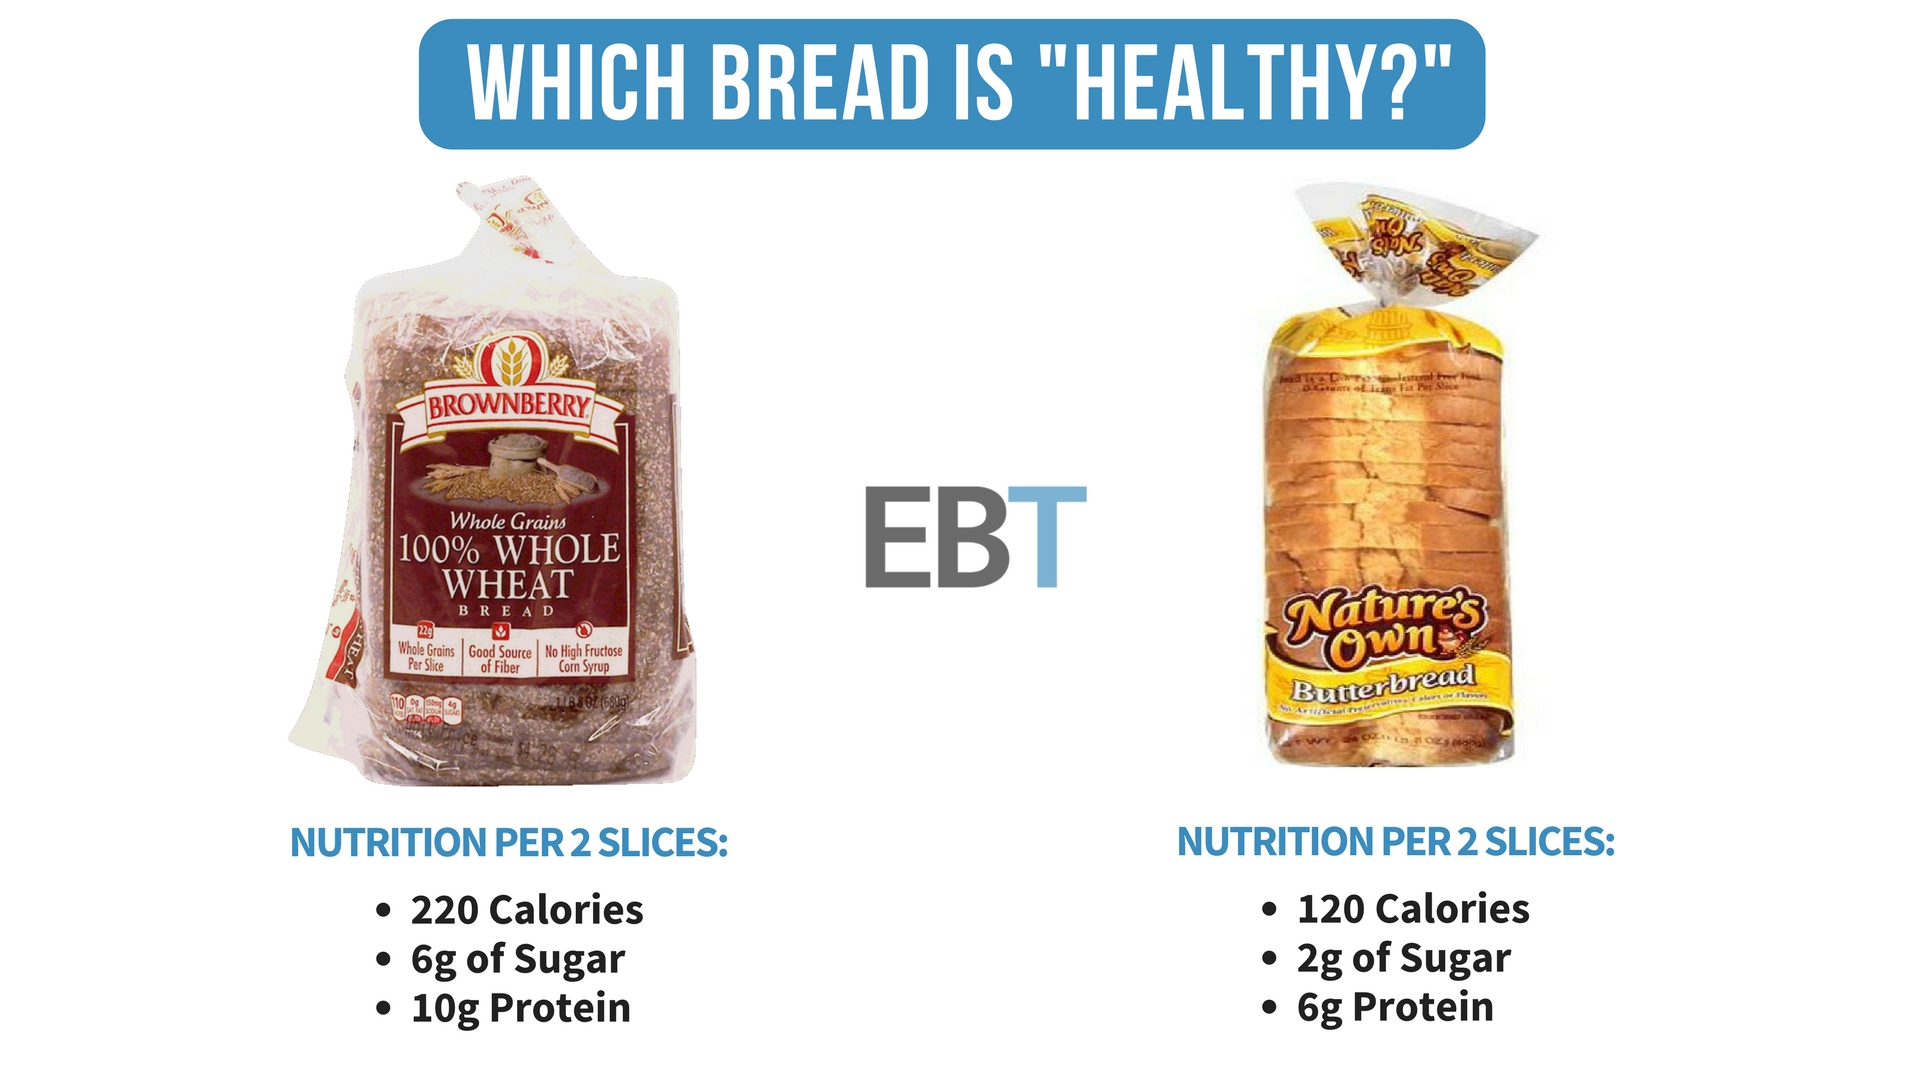 Which Bread is Healthy 16_9?